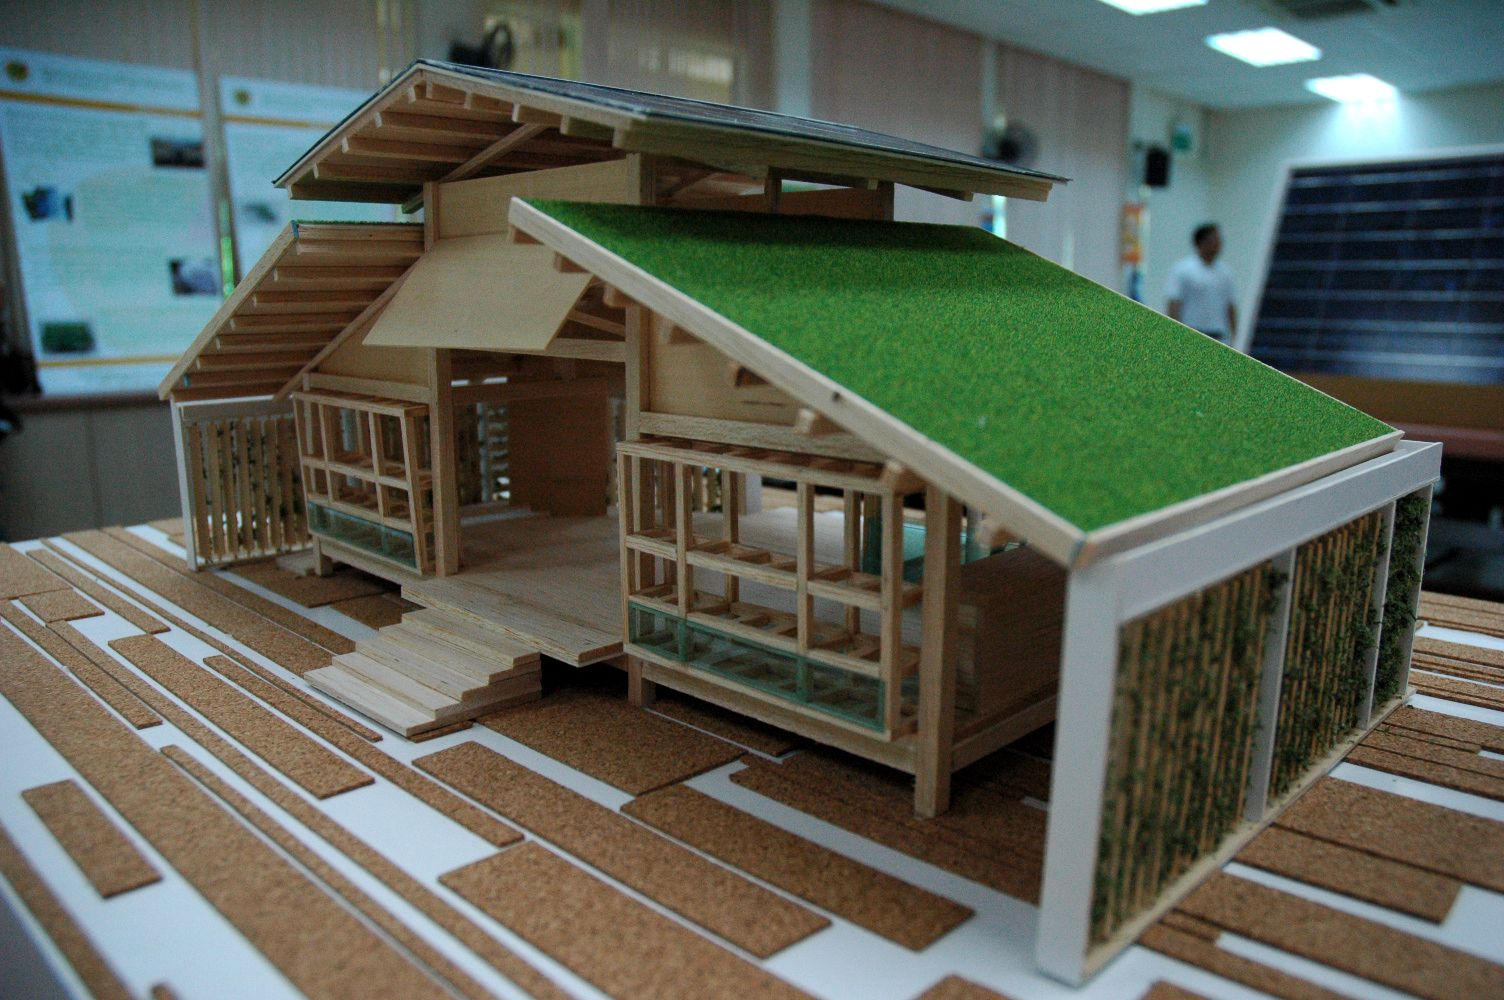 Sustainable House Bamboo House Design Miniature Green House Design Green Homes Design